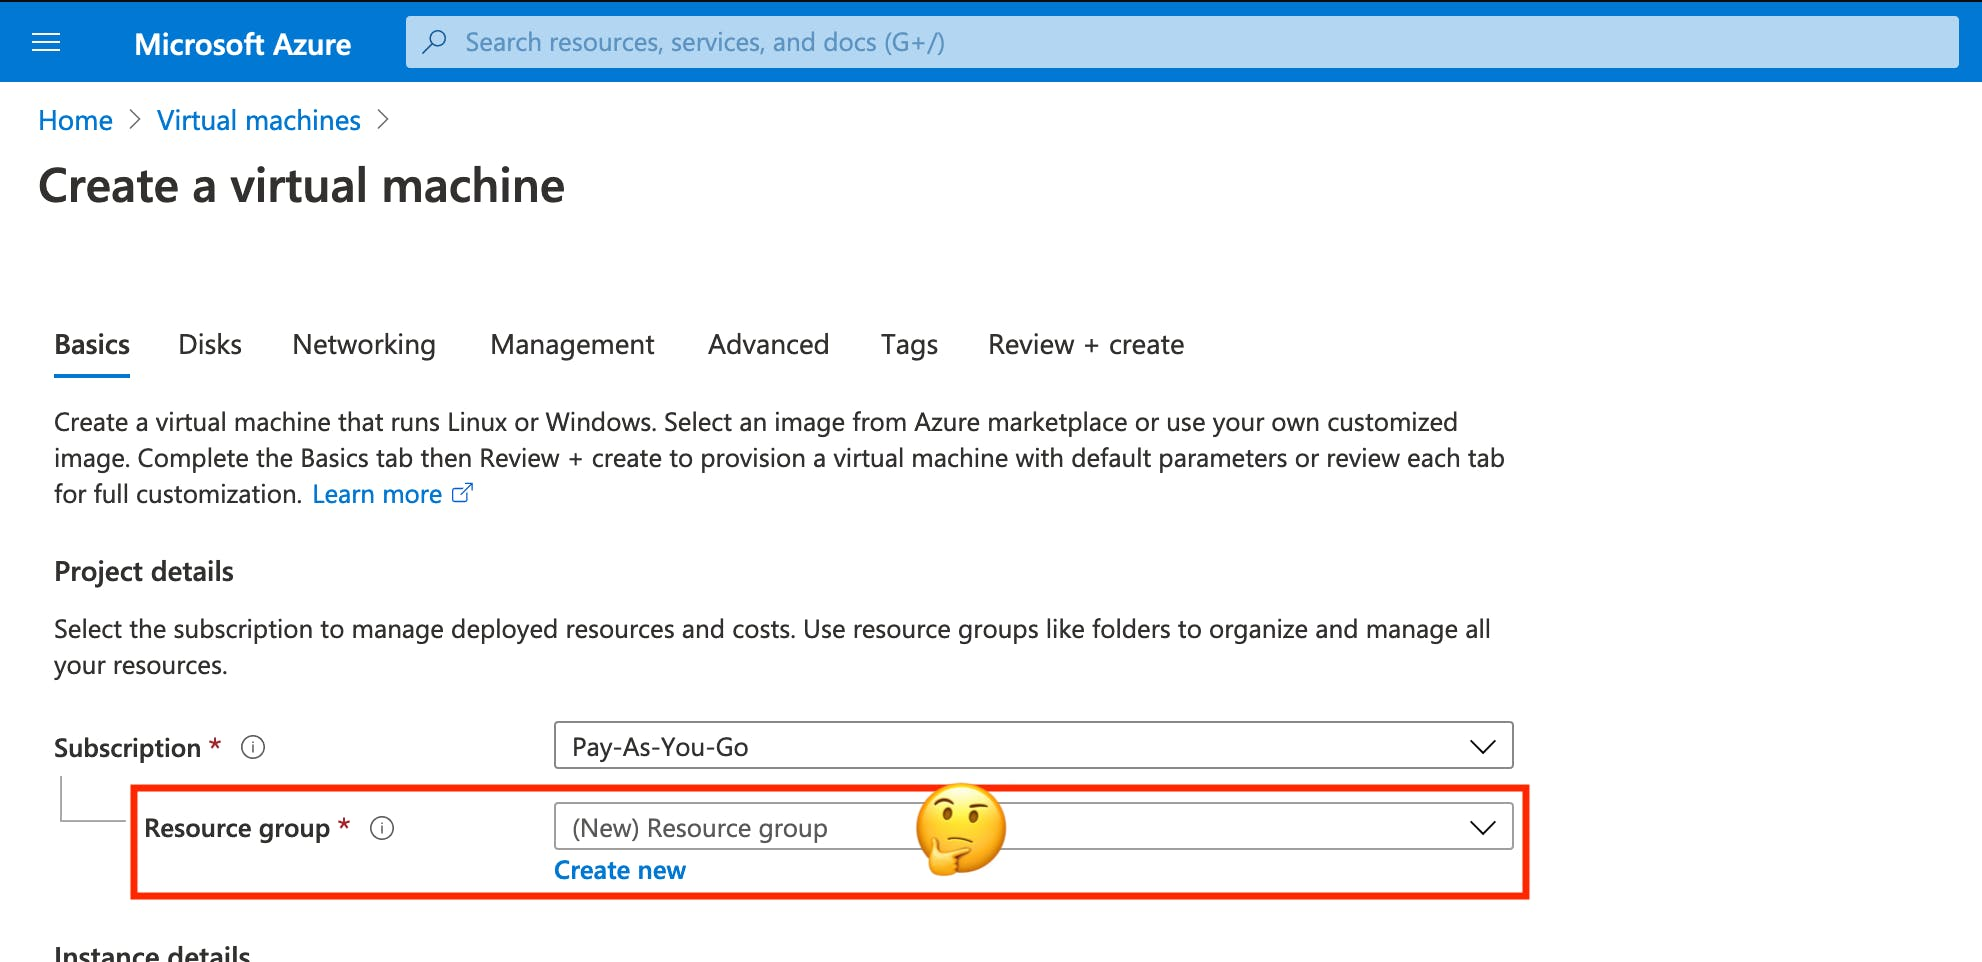 Why do I need a Resource group?